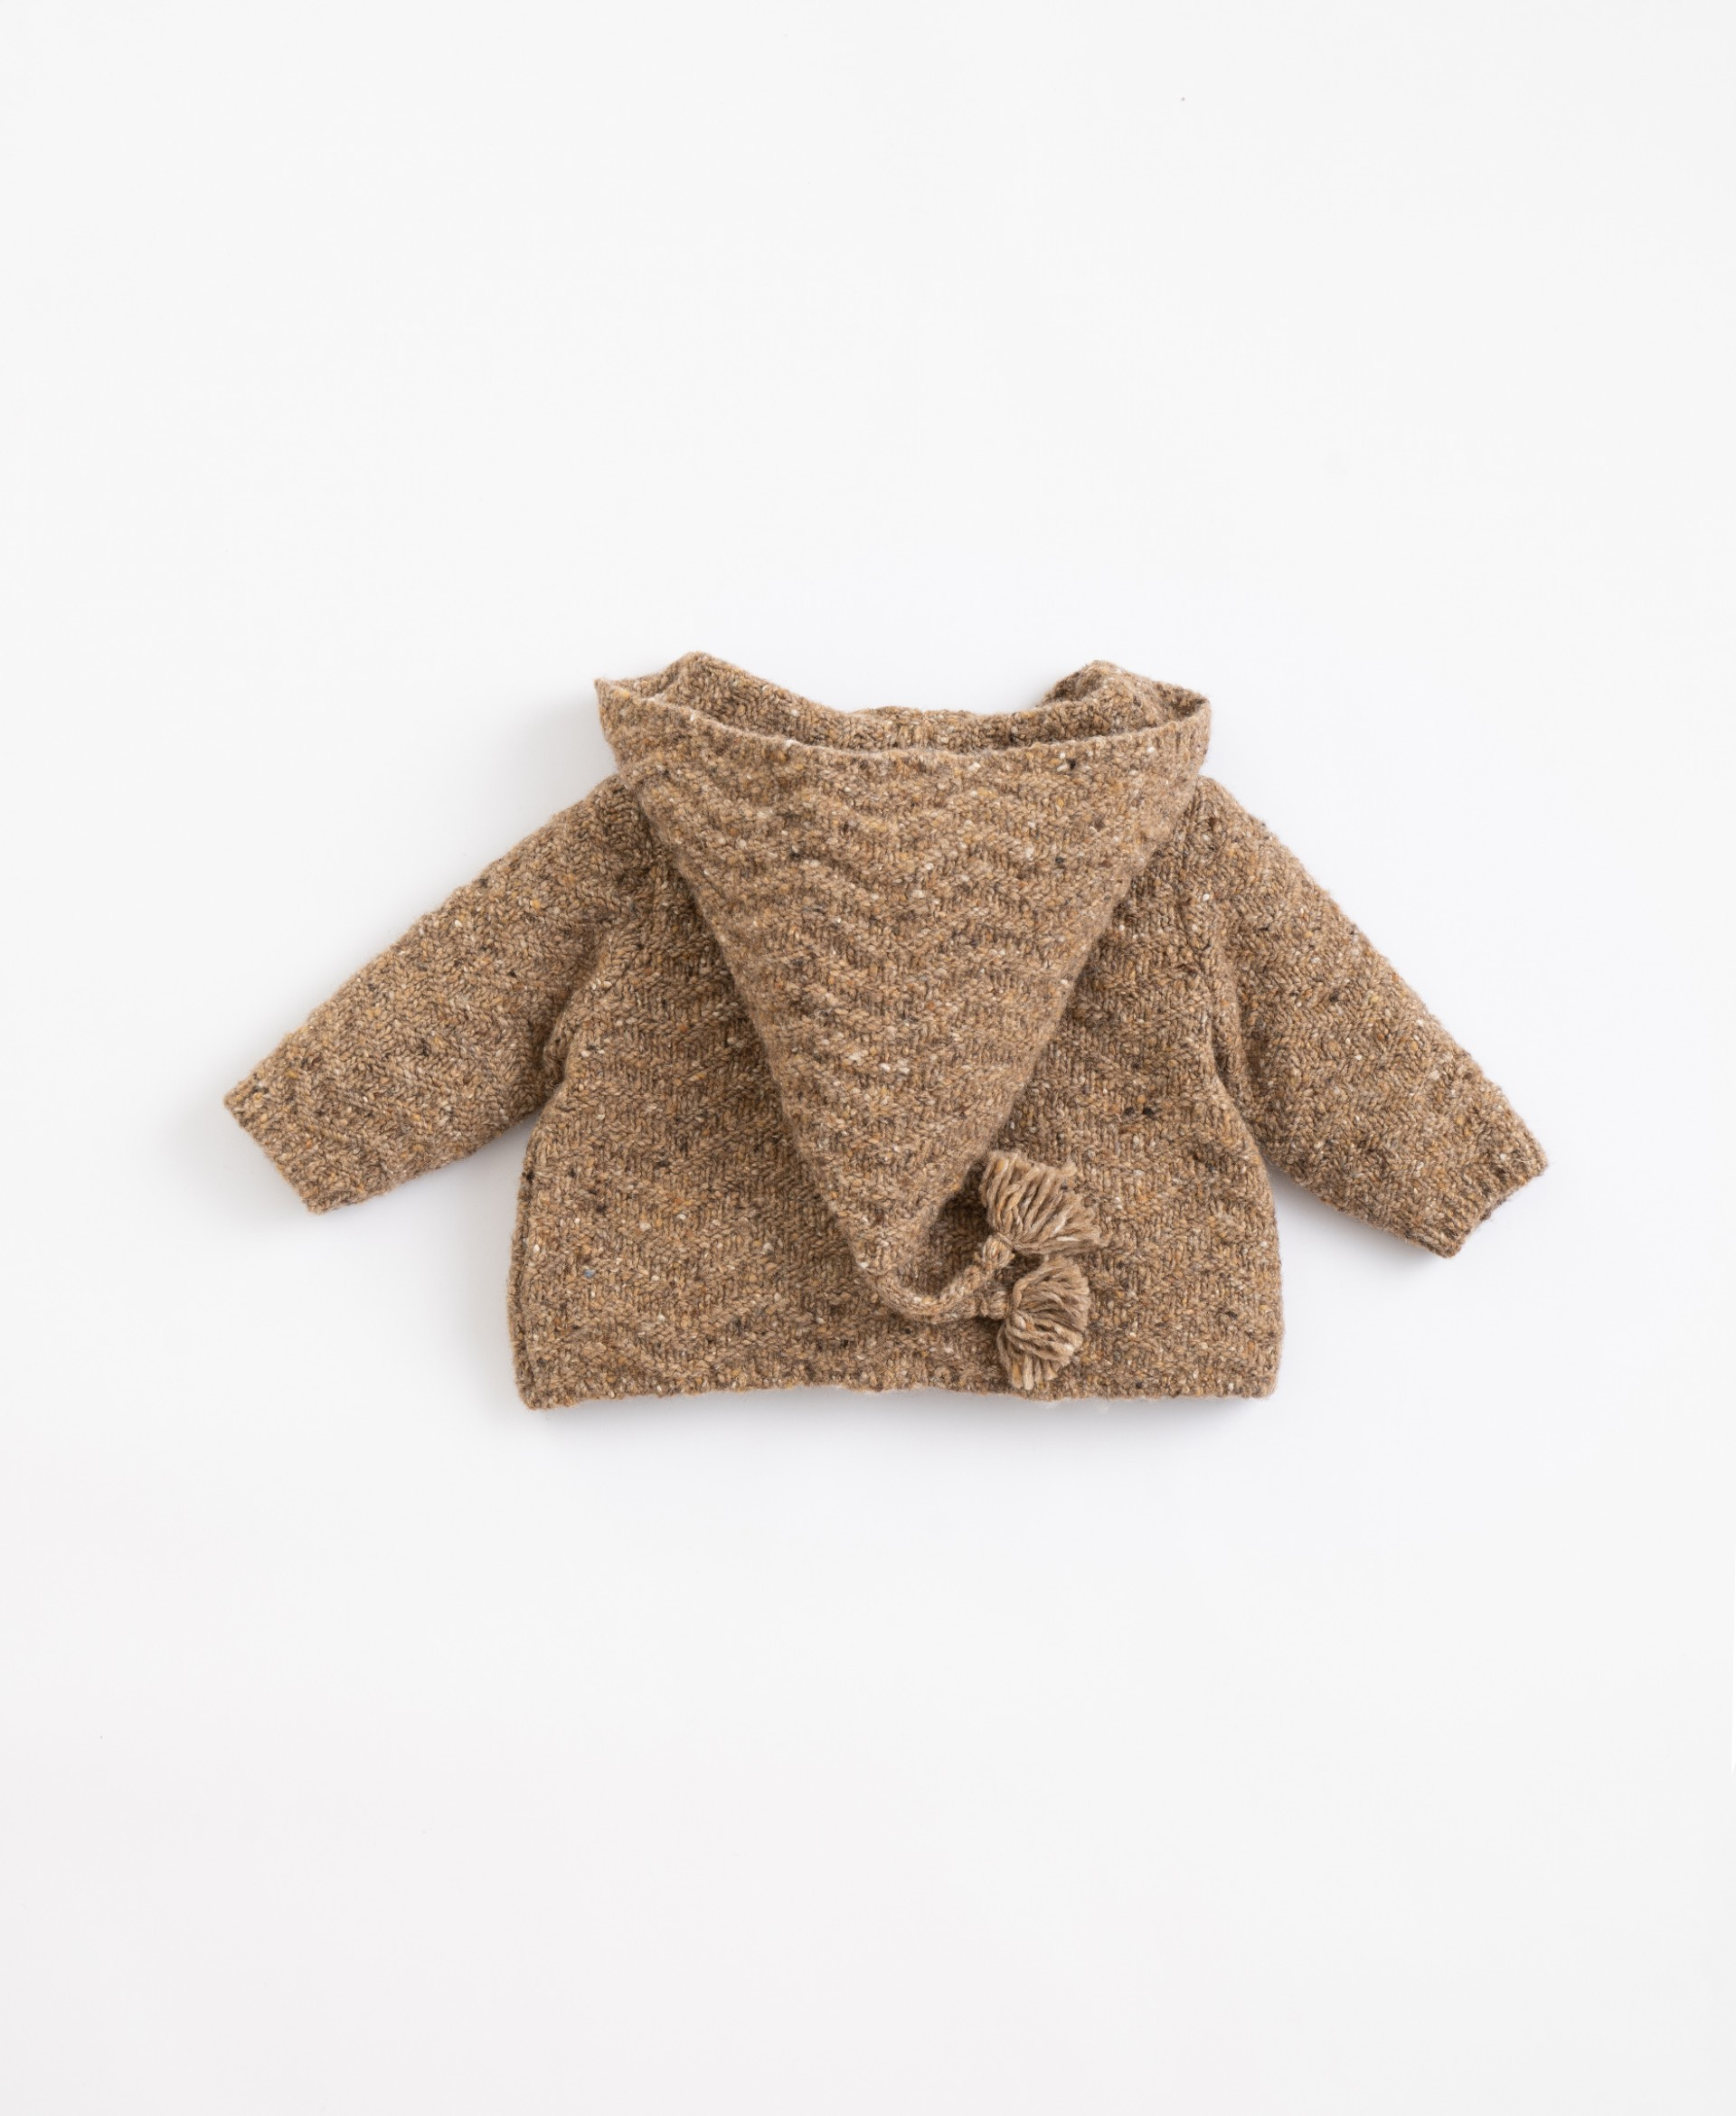 Knitted jacket with recycled fibres and hood | Illustration